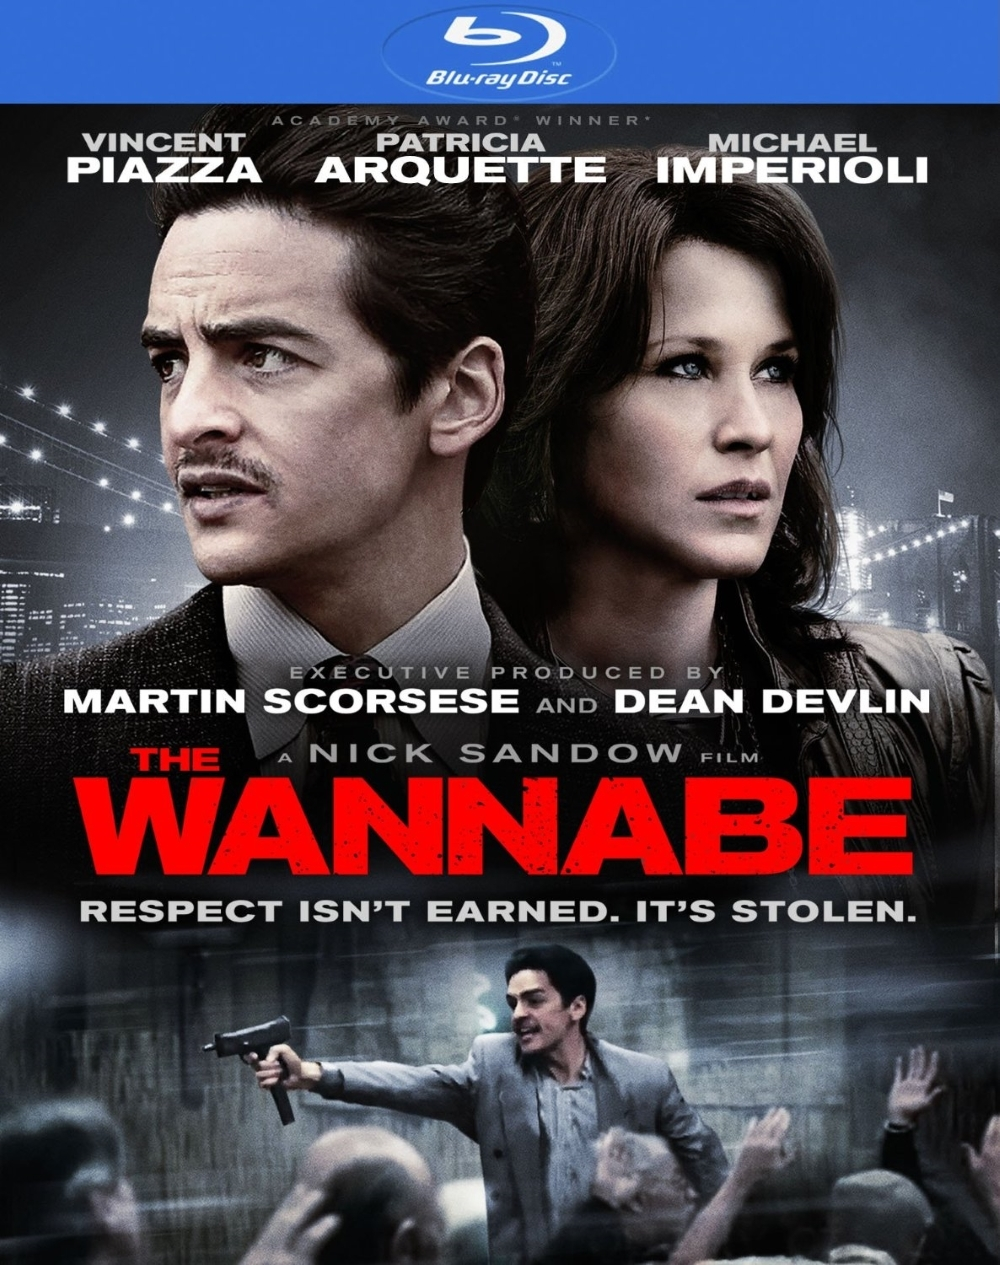 The wannabe  movie  blu ray disc  2016  vincent piazza  p. arquette  imperioli